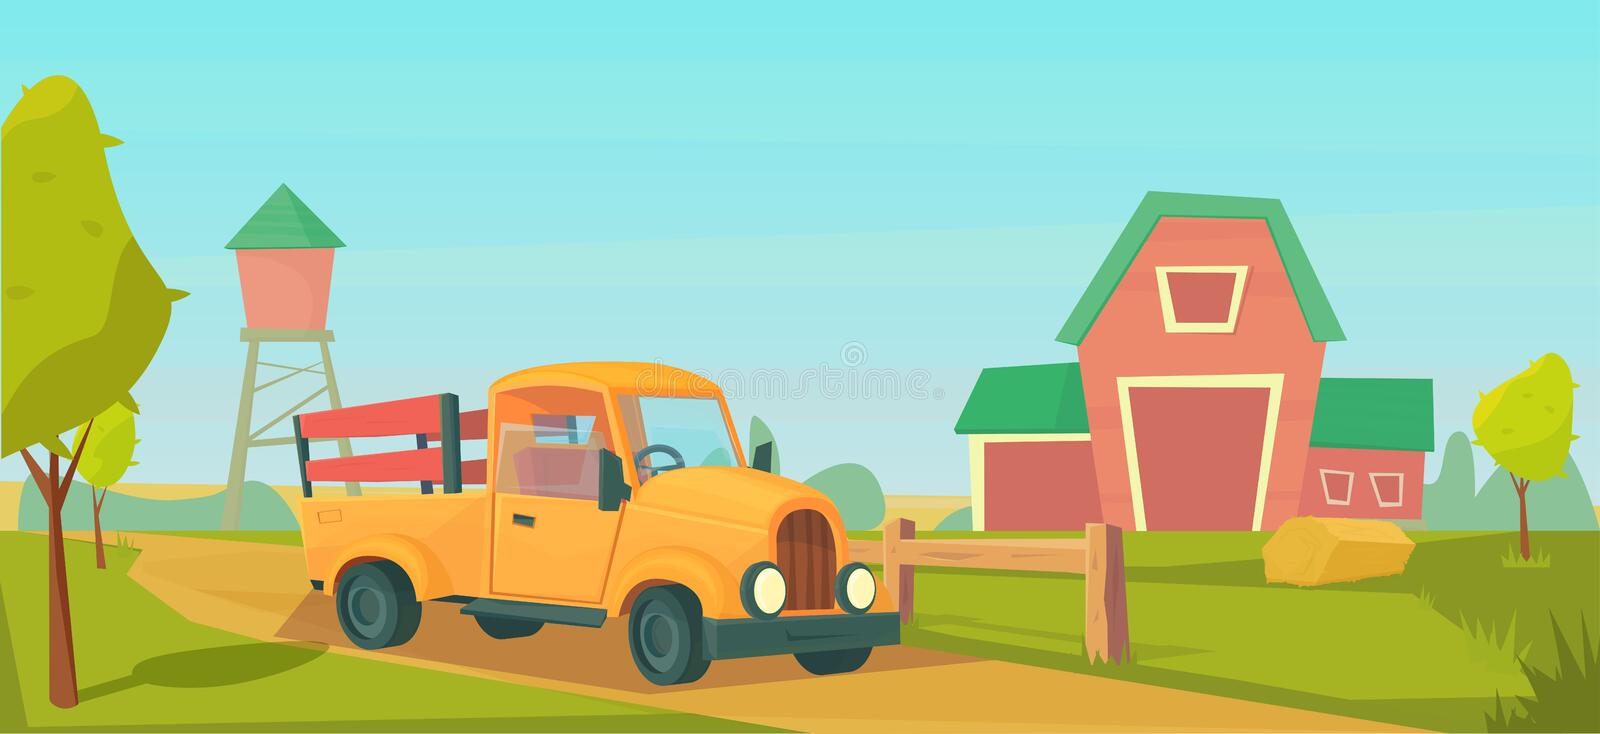 Agriculture. Farm rural landscape with orange truck, red barn, house and ranch, water tower and haystack. Vector flat illustration vector illustration